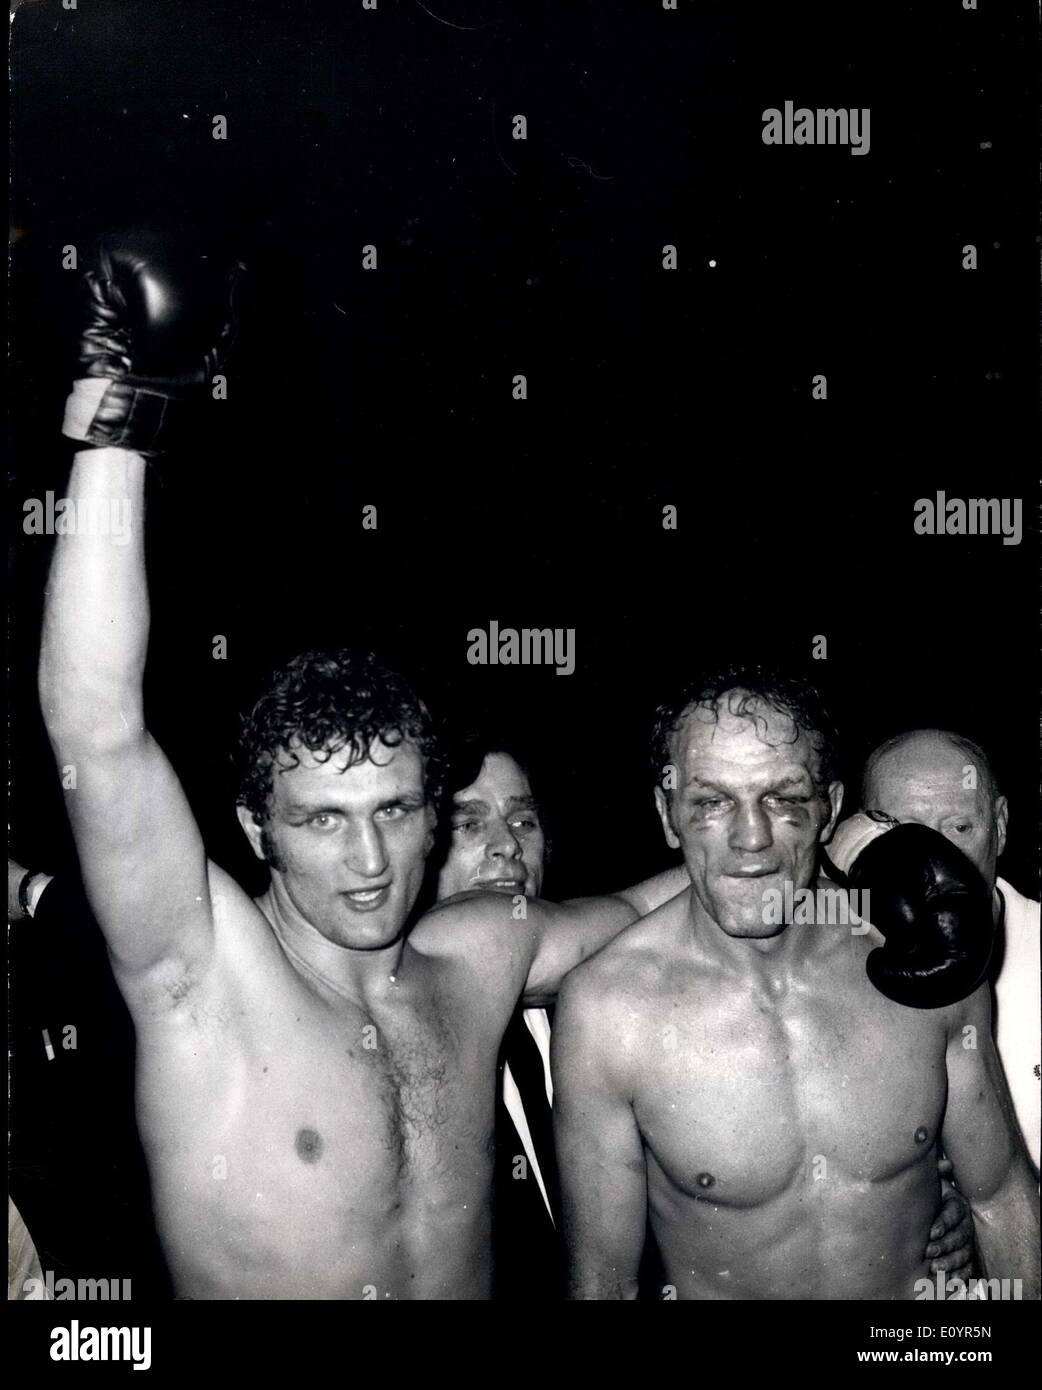 Mar. 17, 1971 - Joe Bugner is the new champ: 21 year old Joe Bugner last night became the British, Commonwealth and European heavyweight champion when he beat Henry Cooper on points over 15 rounds at Wembley. After the fight Henry Cooper, 36, announced that he will retire from the ring. Photo shows Joe Bugner, with raised arm, and Henry Cooper, pictured after last night's fight. - Stock Image